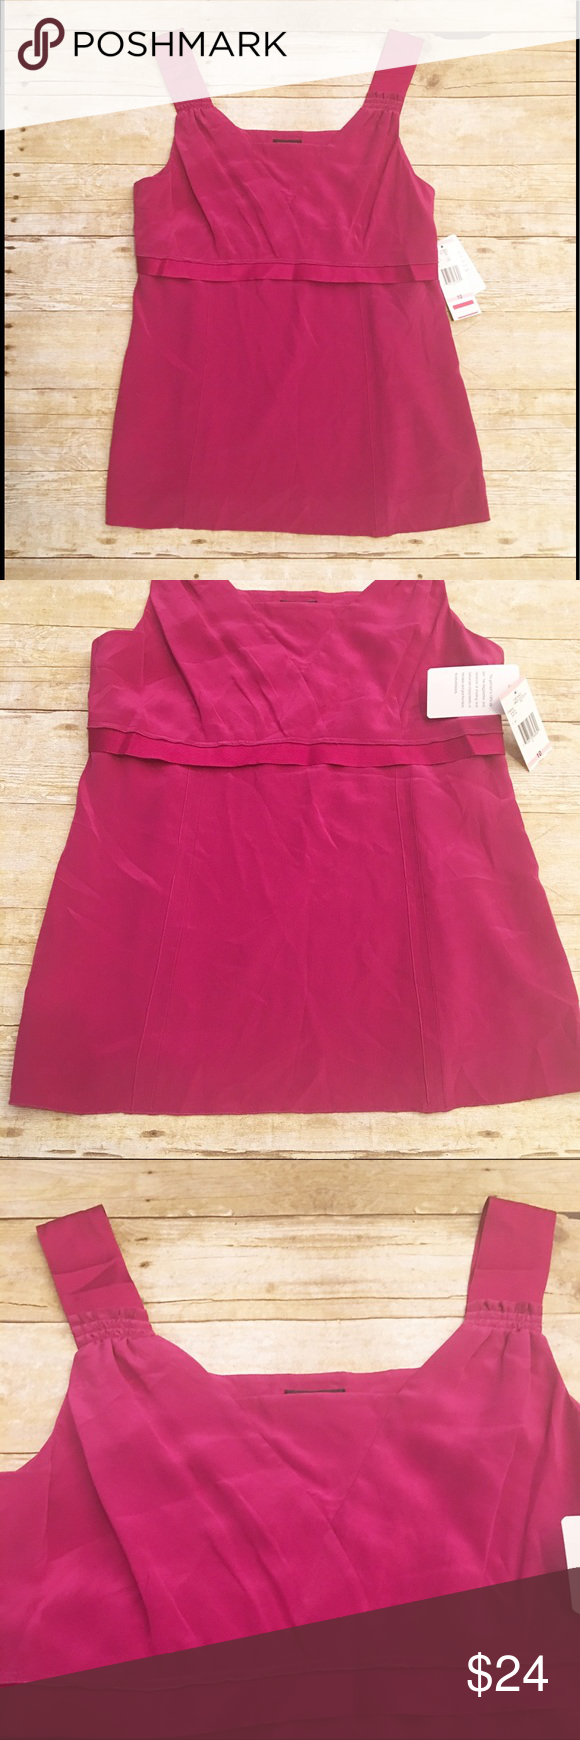 Nwt Nine West Pink Tank Top Size 10 Nwt Nine West Pink Tank Top In A Size 10 100 Silk By The Color Chart Posted It I Fashion Clothes Design Fashion Design